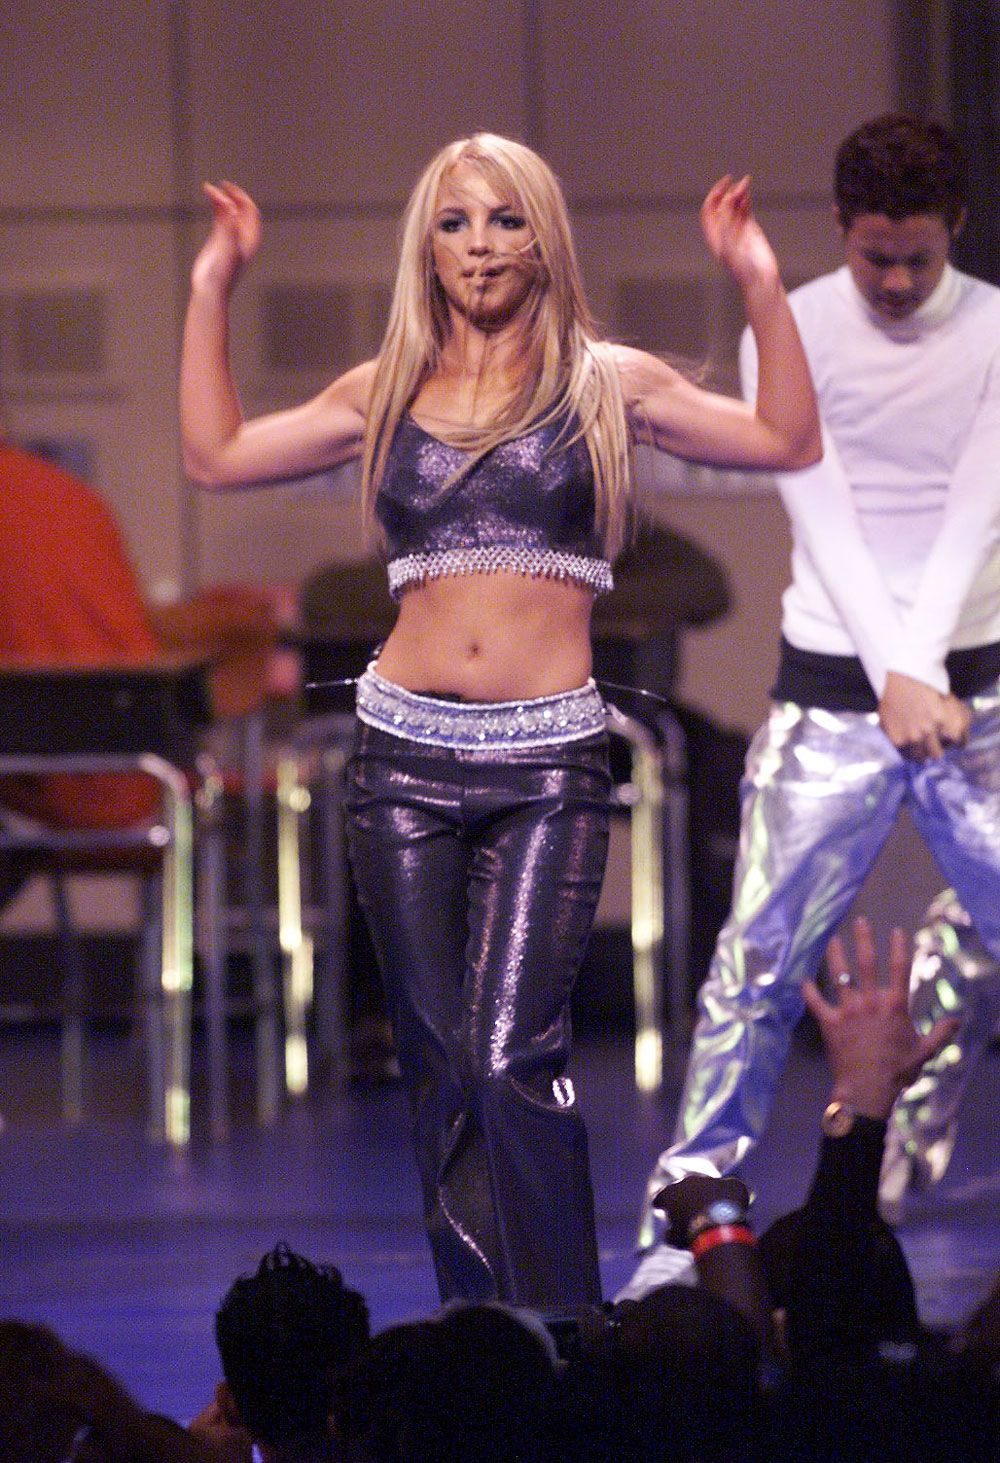 A Definitive Ranking Of Every Outfit Britney Spears Has Worn To The MTV Video Music Awards